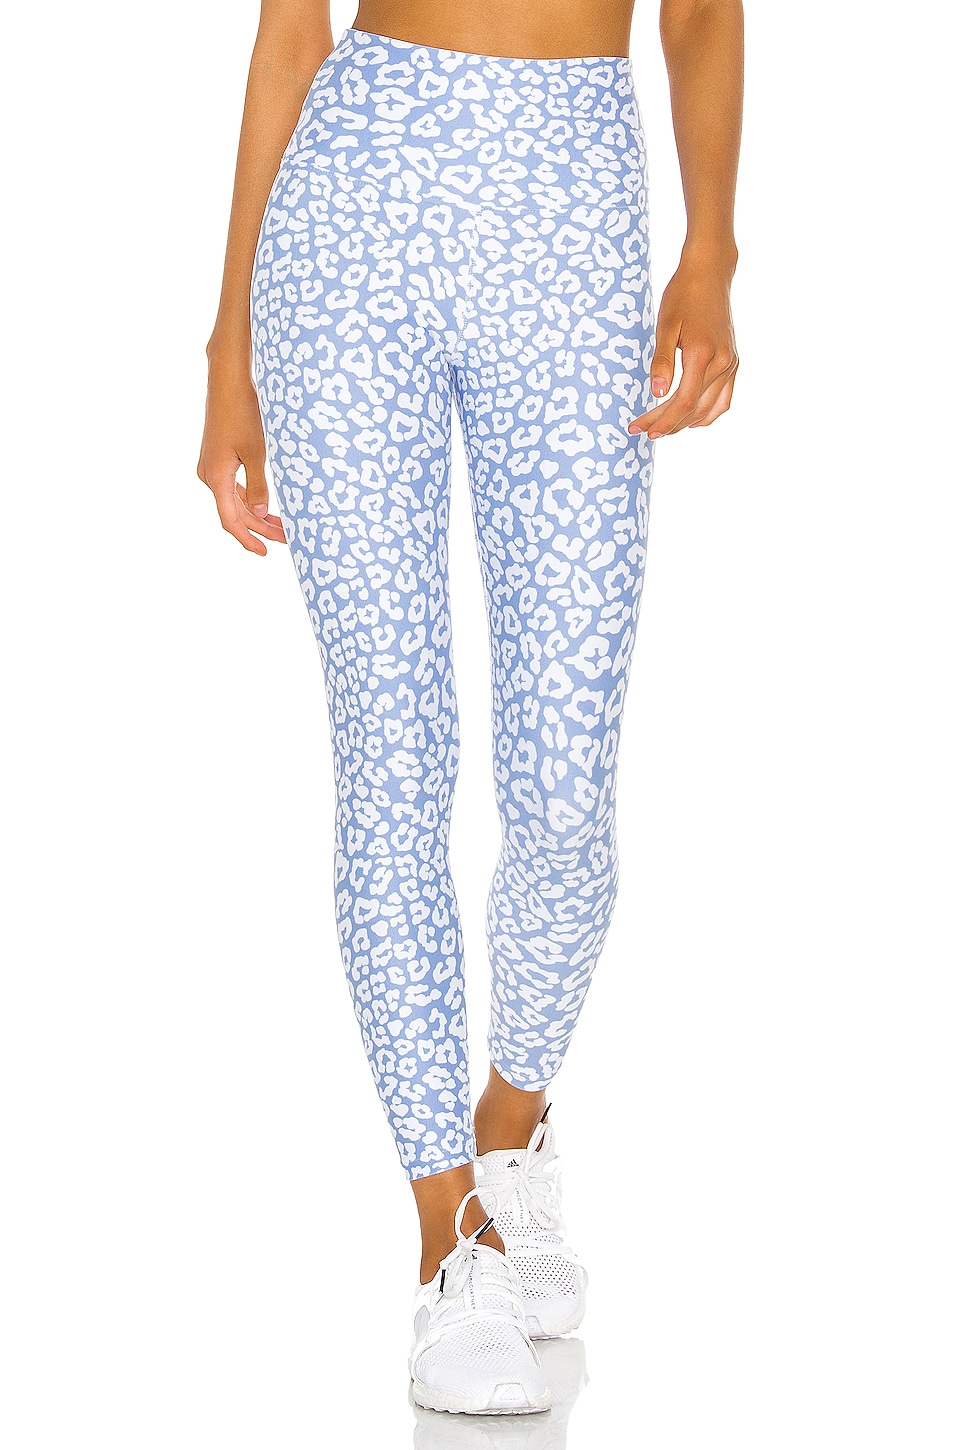 BEACH RIOT Piper Legging in Blue Leopard